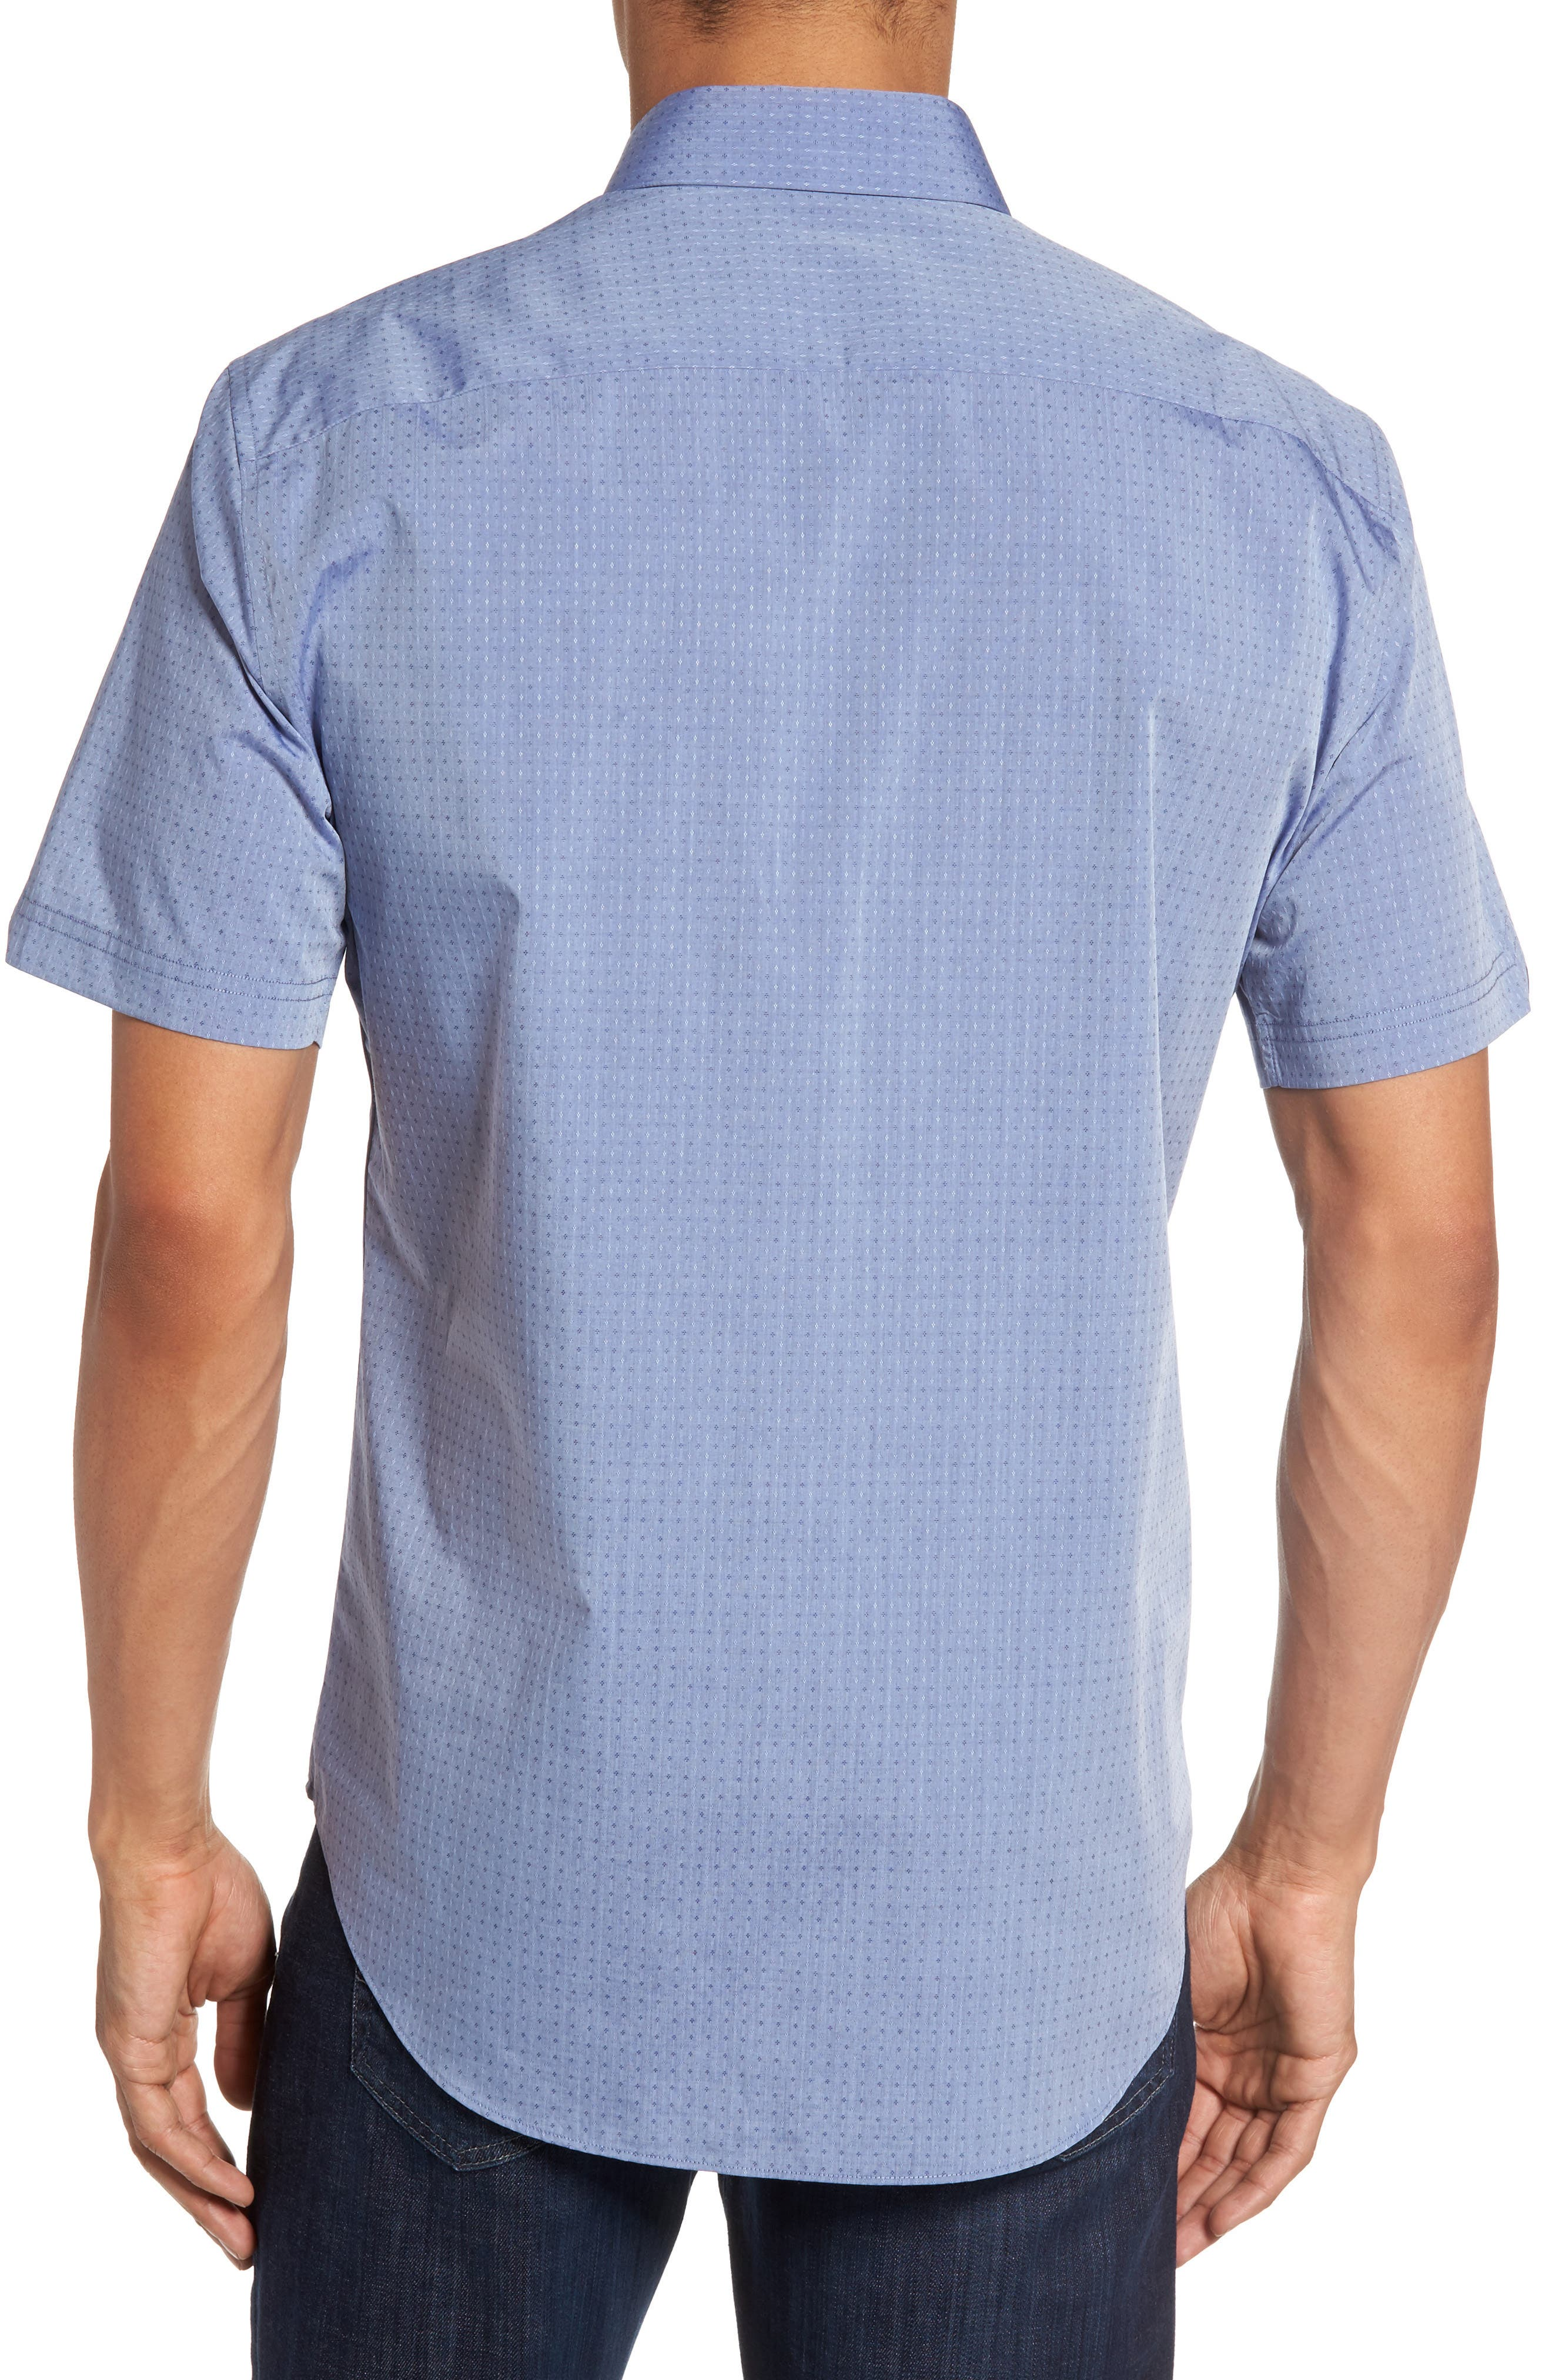 Diamond Print Short Sleeve Sport Shirt,                             Alternate thumbnail 3, color,                             Blue